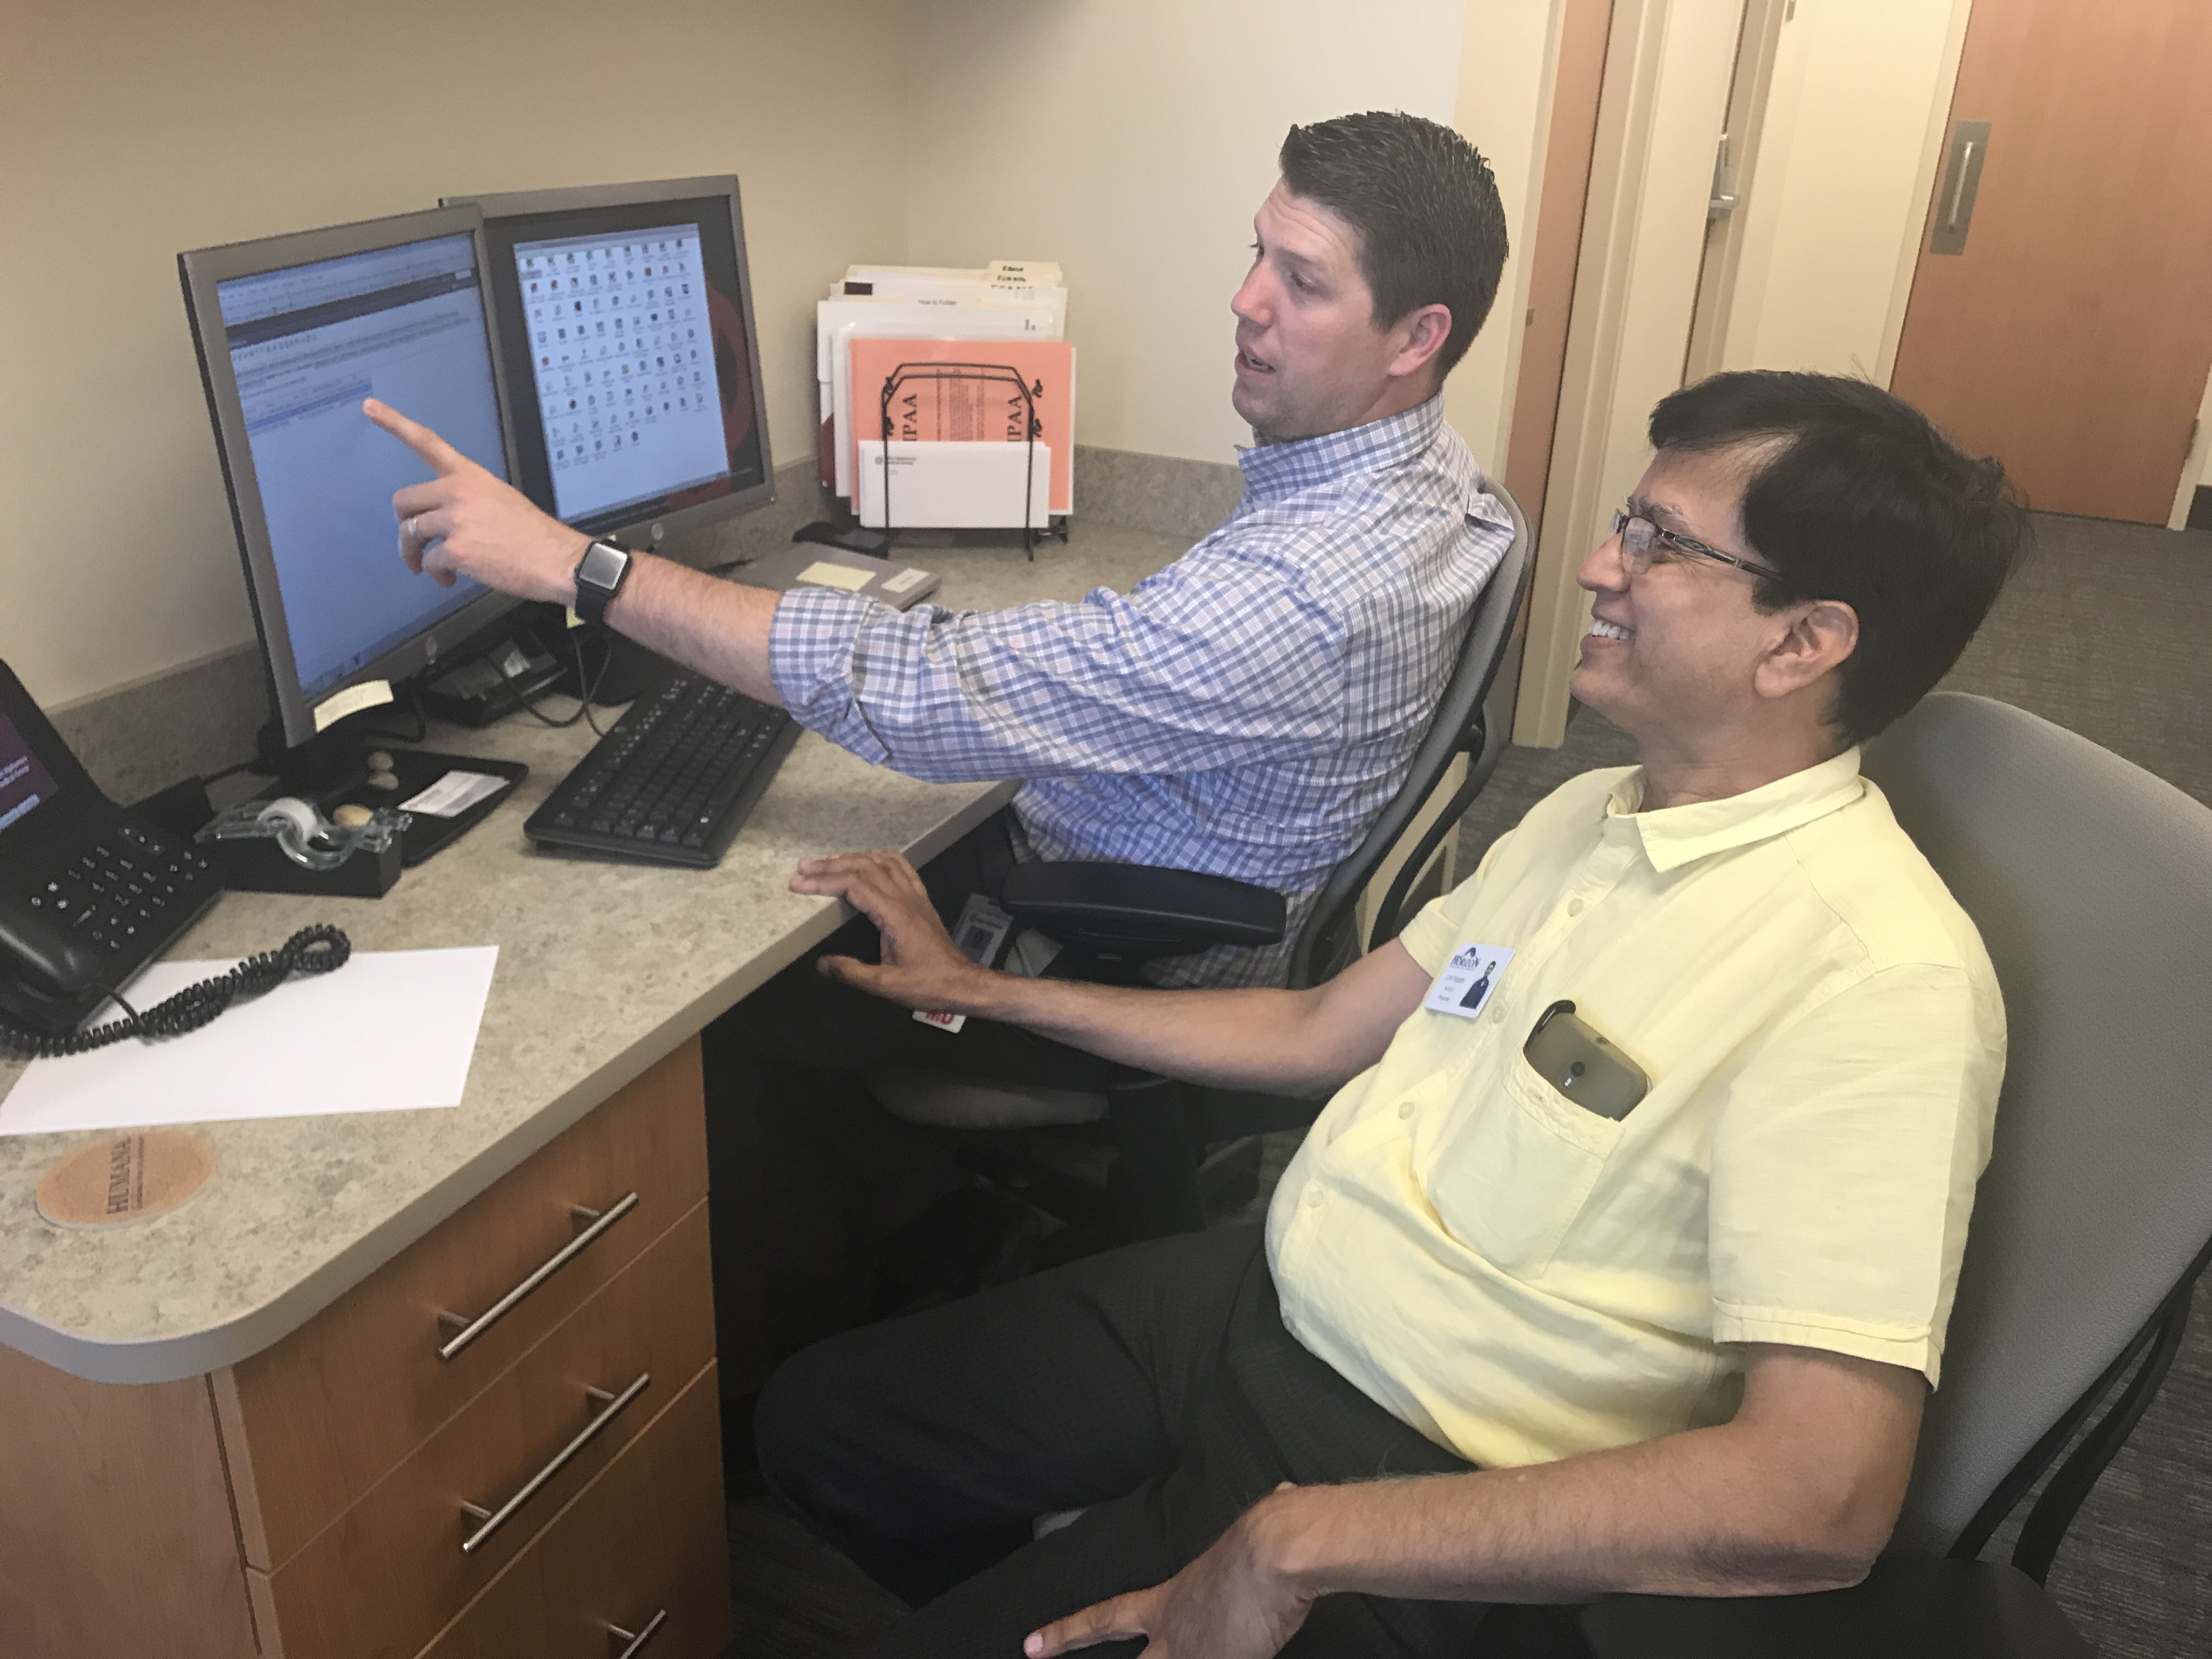 Dr. Walker from Horizon helping to train Dr. Tripathi in Meridian, ID.